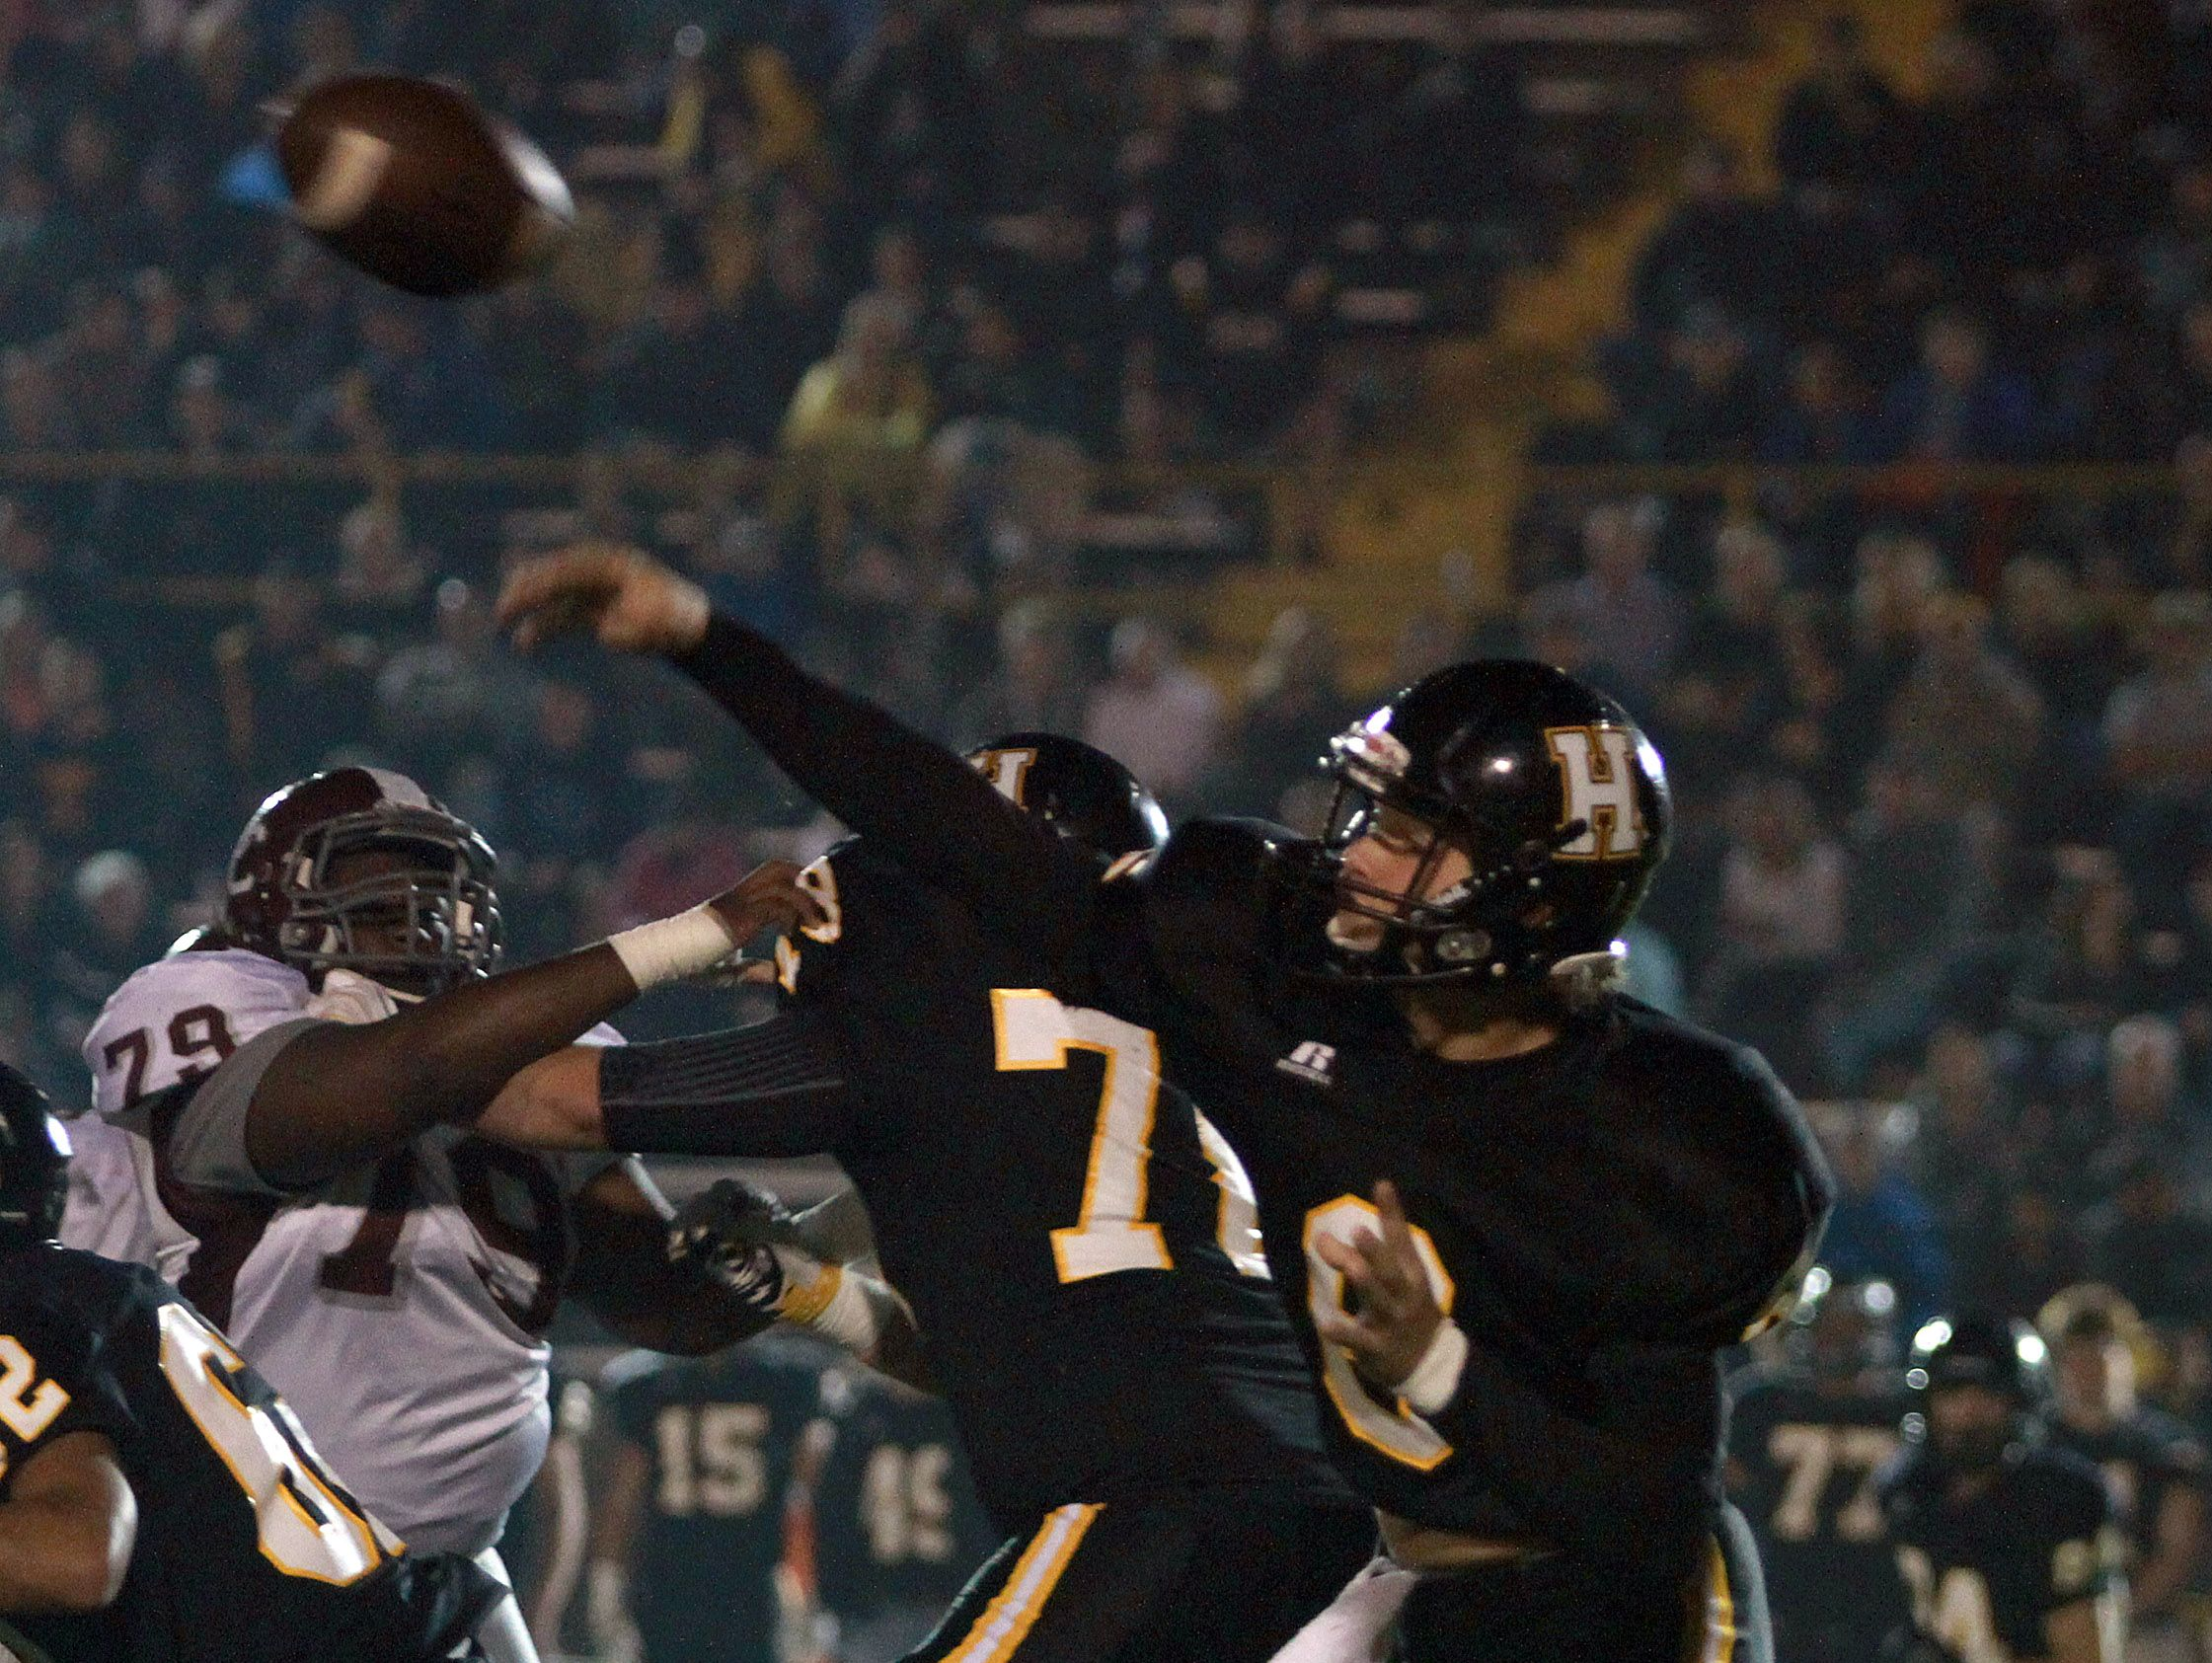 Hendersonville QB Brett Coker fires a completion during Friday's game against Station Camp.